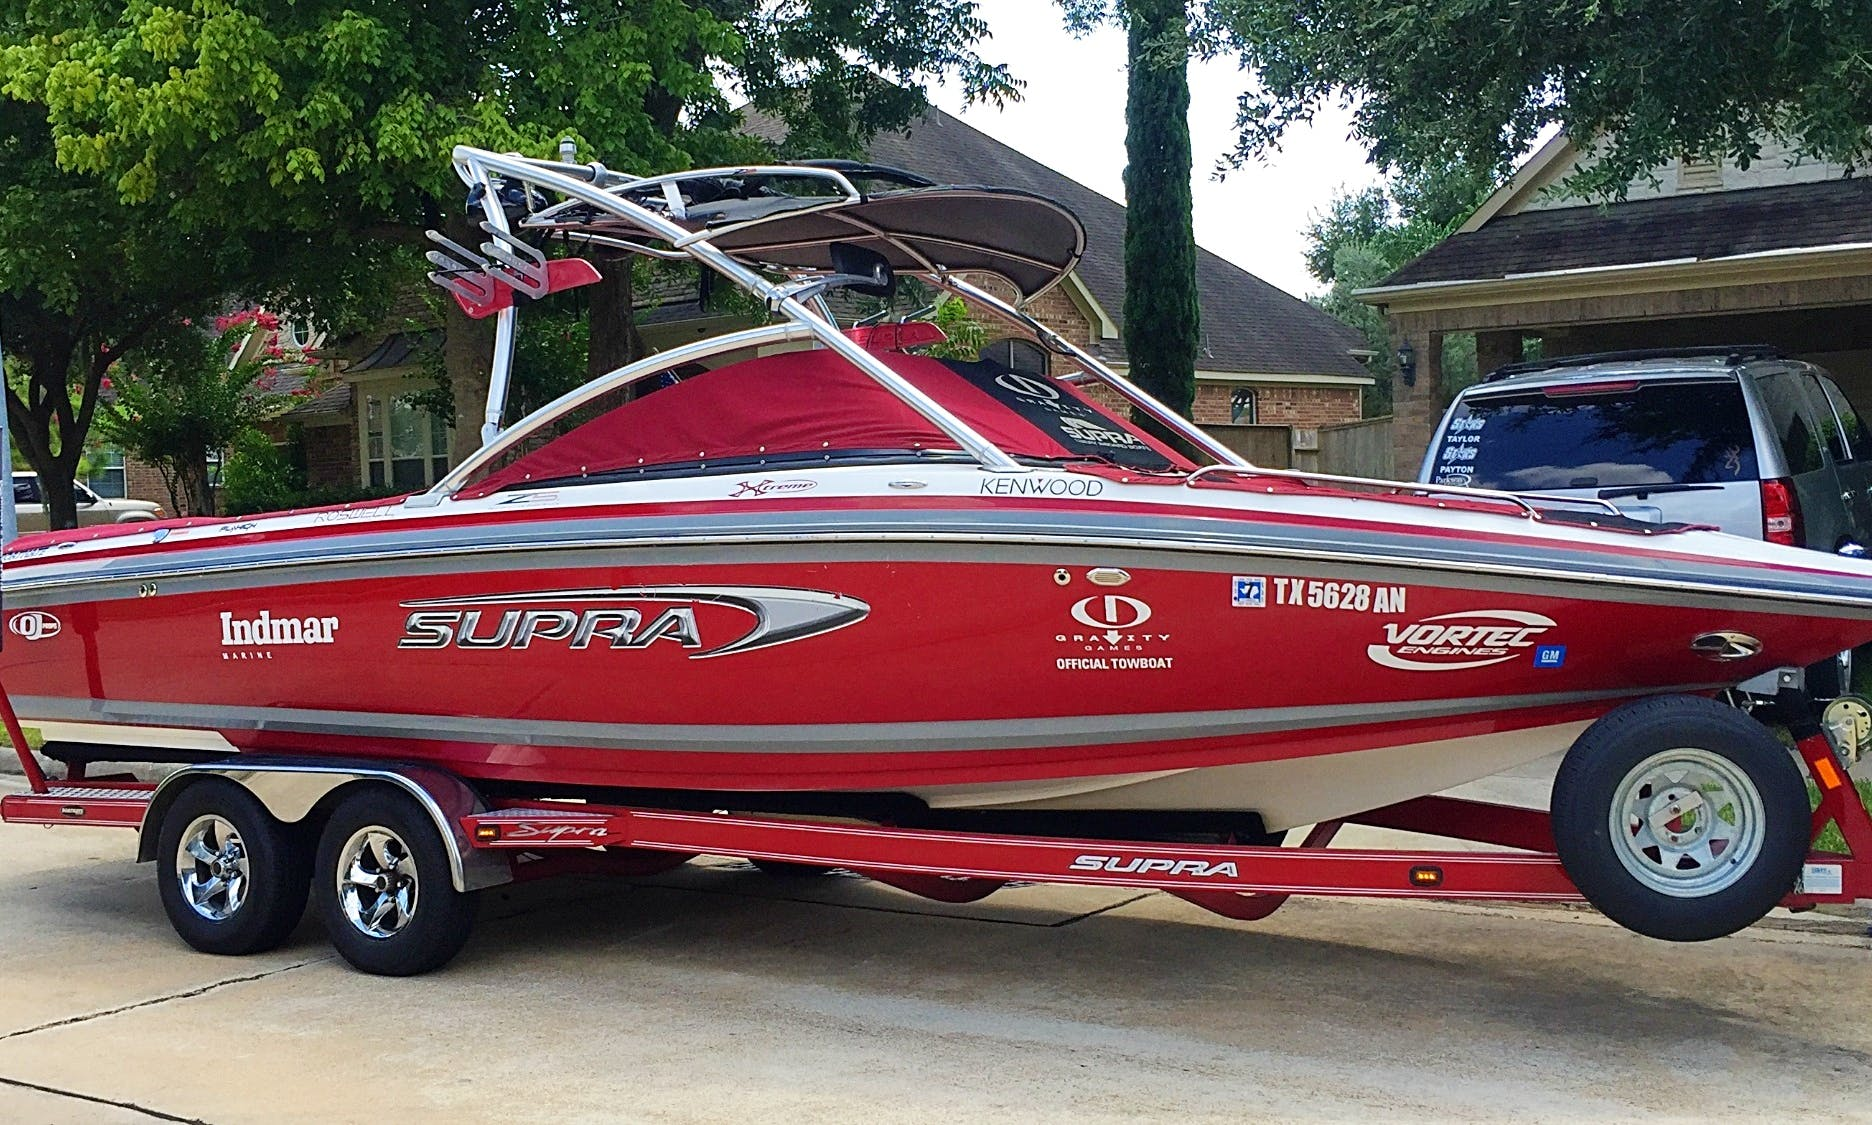 """Gorgeous 24ft """"Supra"""" Bowrider Boat Rental in Conroe, Texas"""